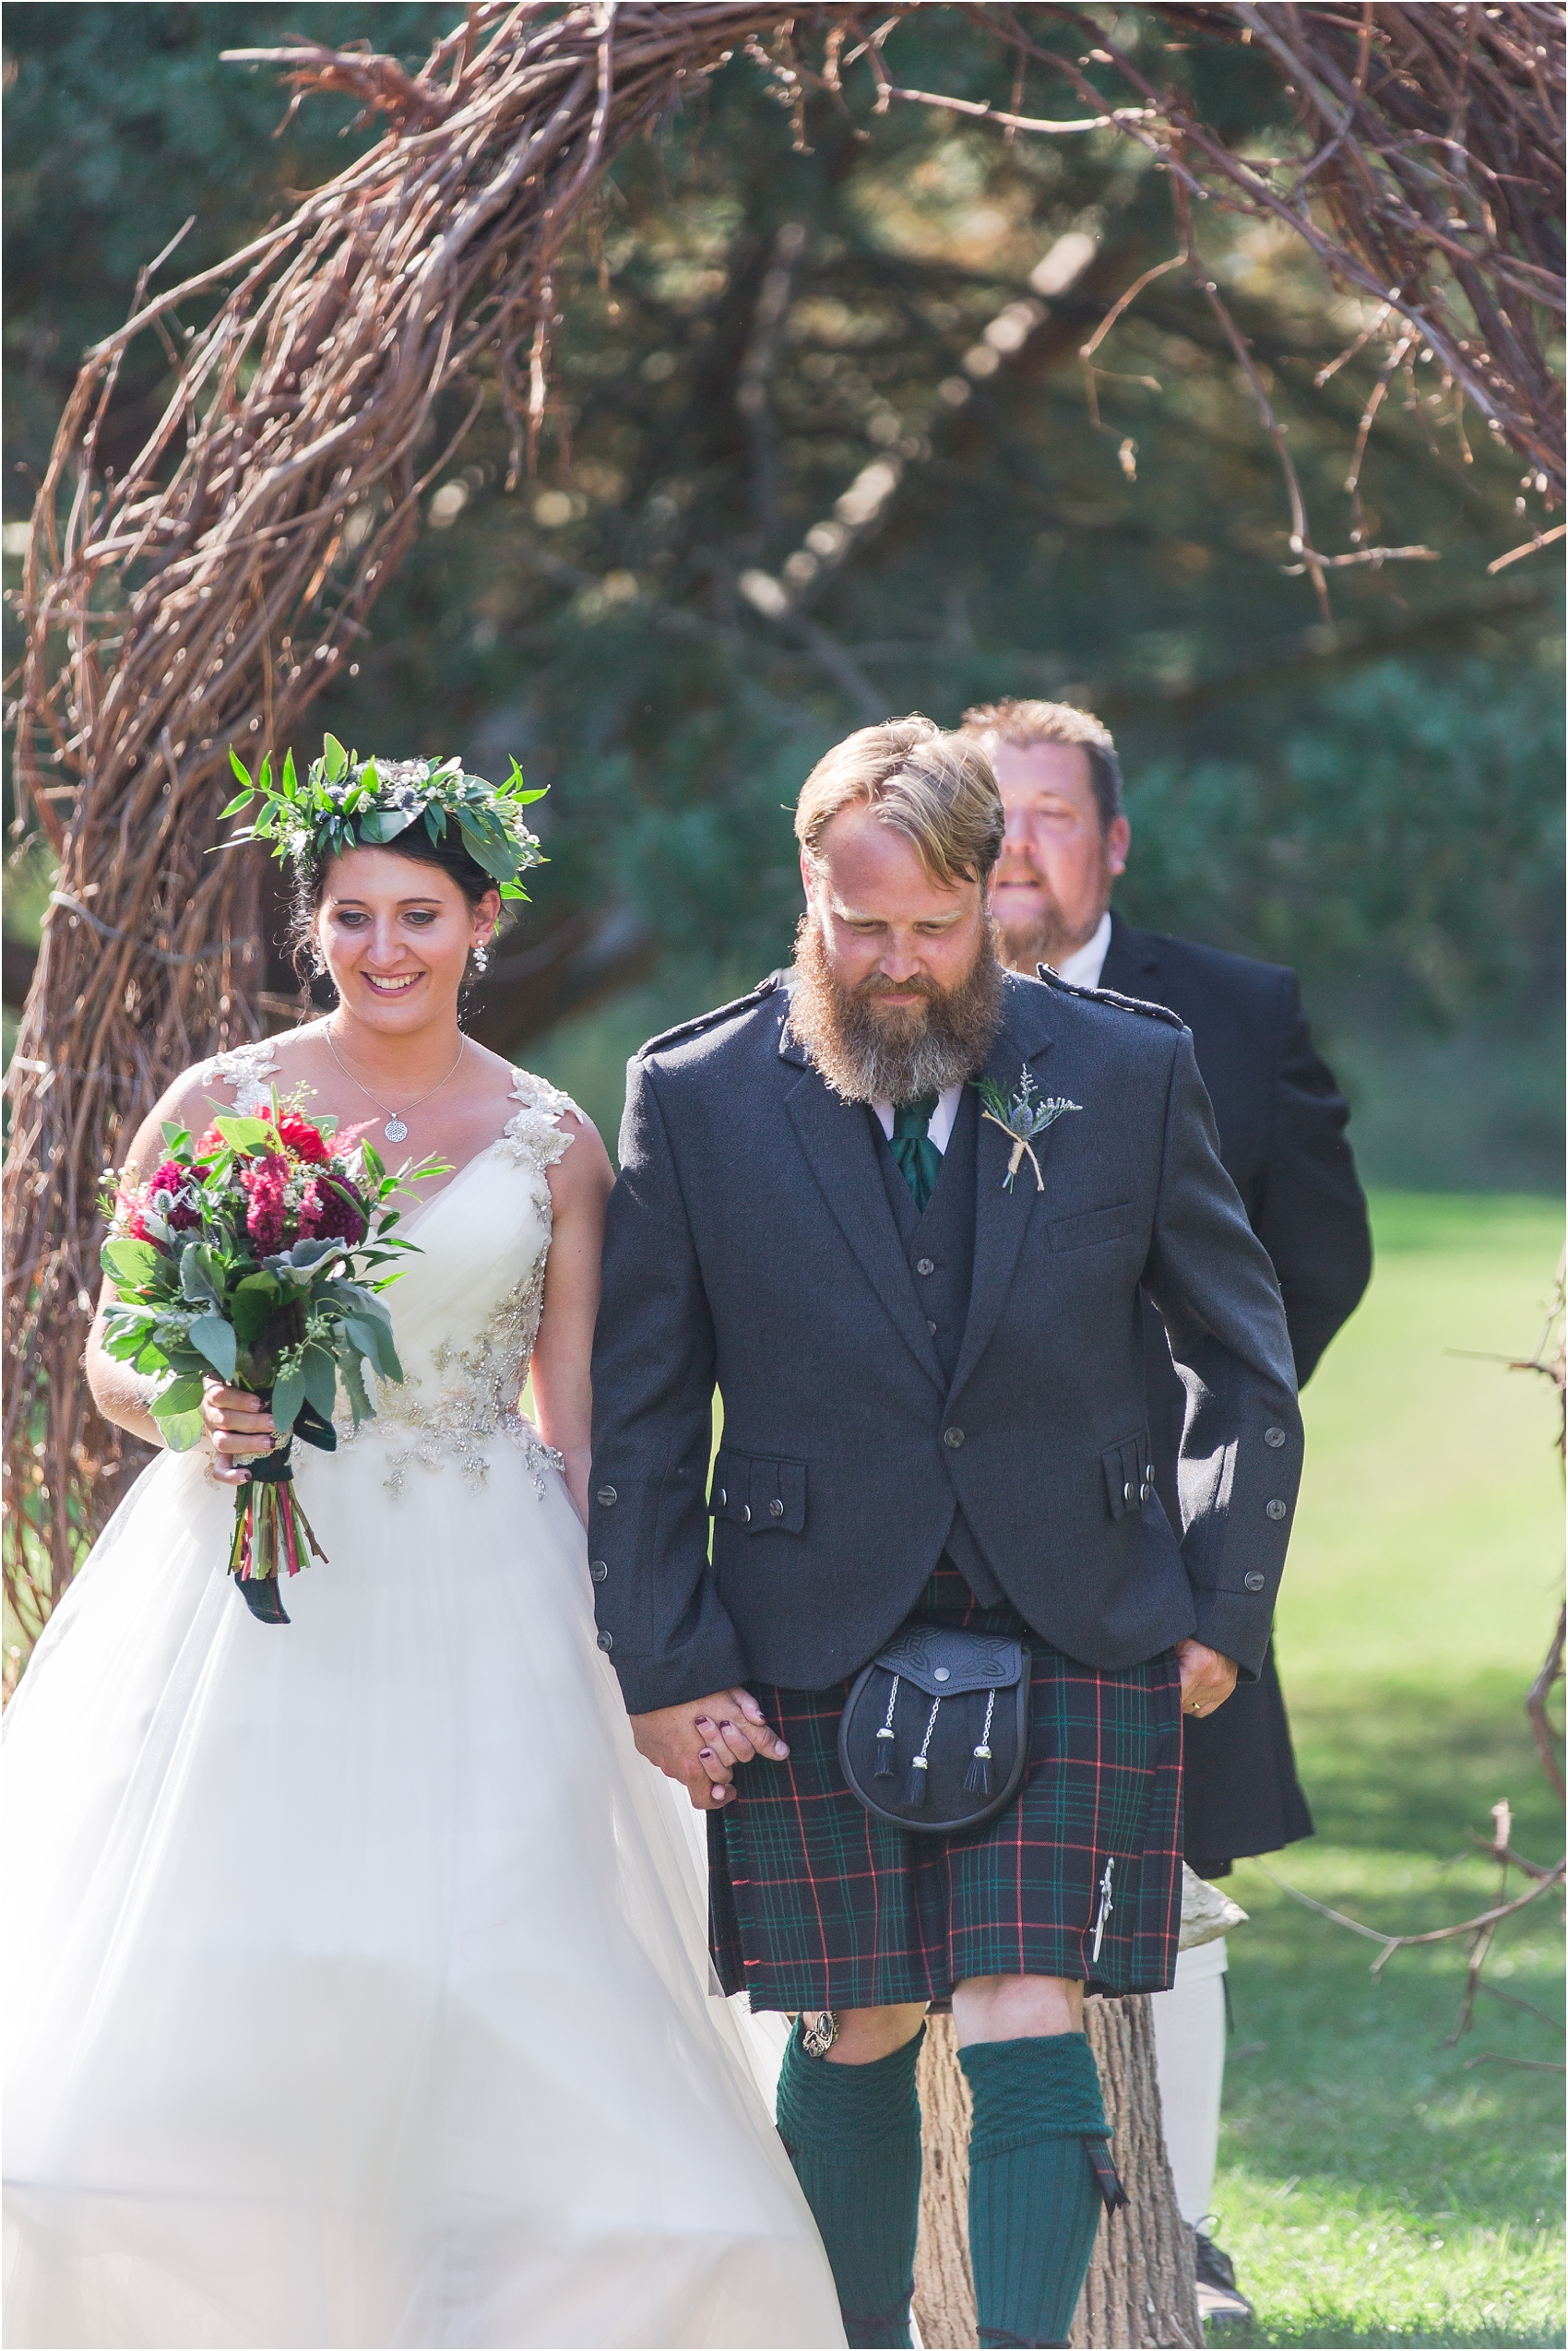 scottish-inspired-wedding-photos-in-the-country-in-port-sanilac-michigan-by-courtney-carolyn-photography_0032.jpg